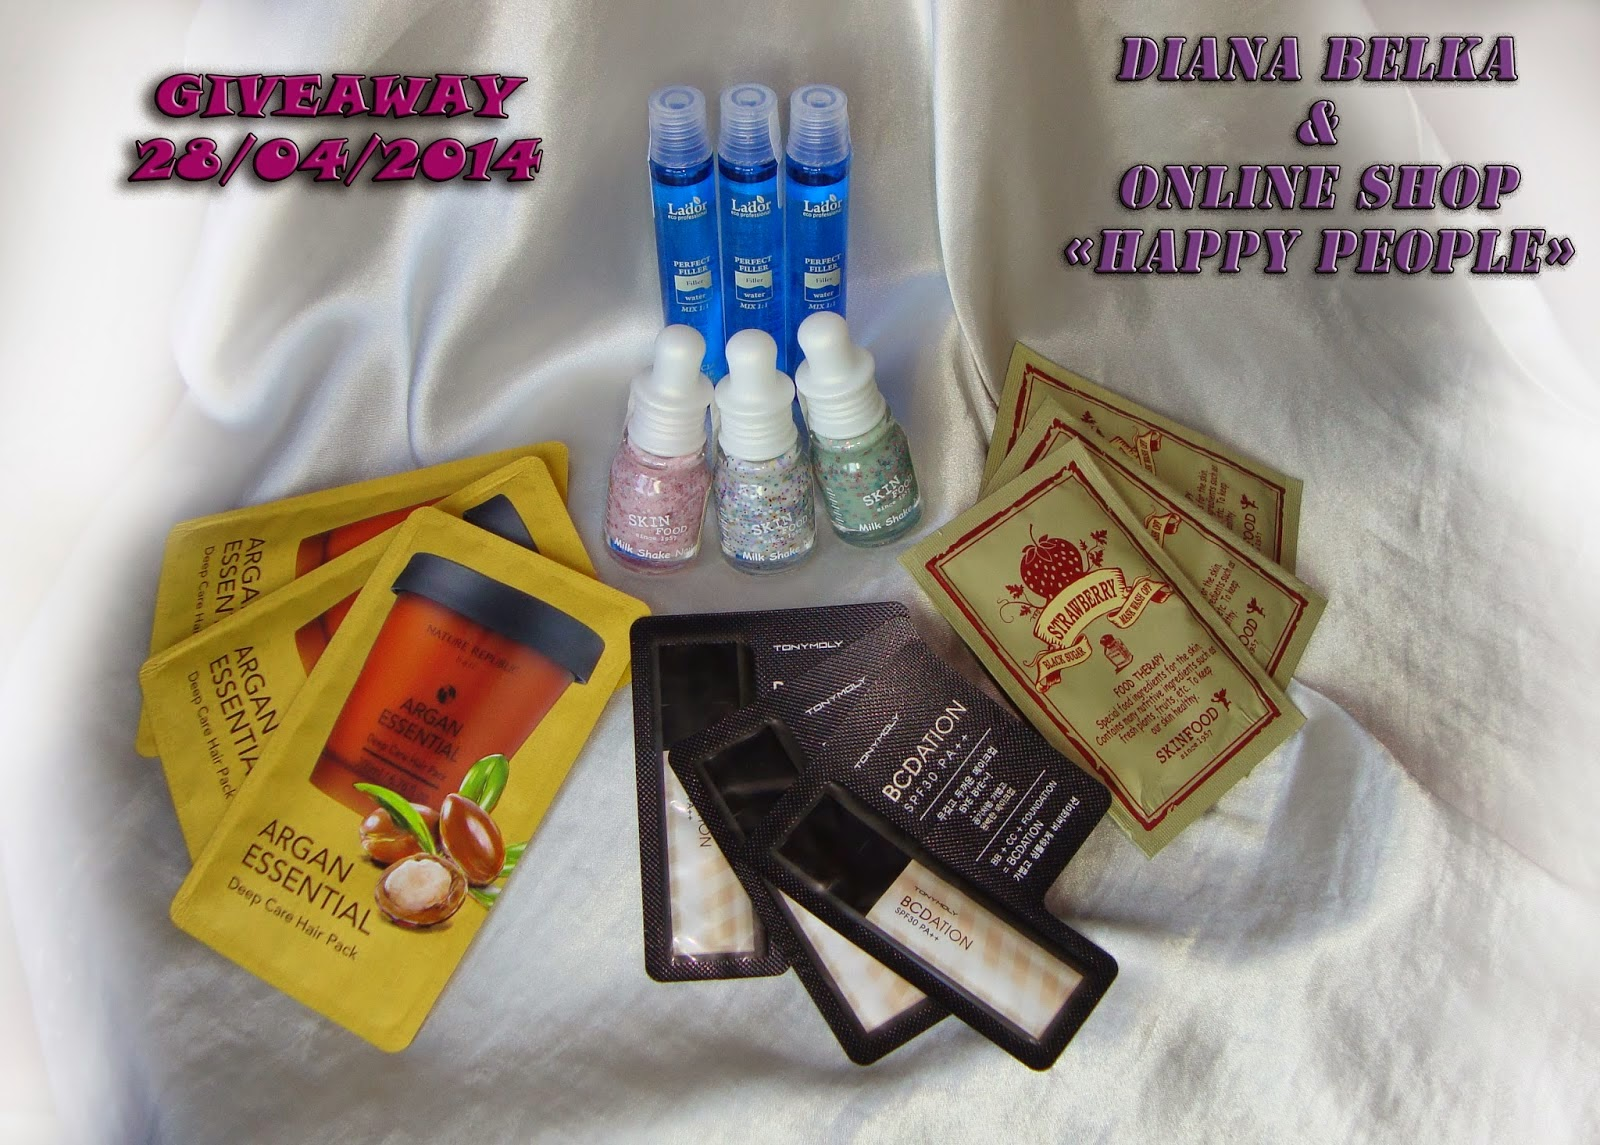 "Diana Belka & online-shop ""Happy People"" GIVEAWAY 28/04/2014"